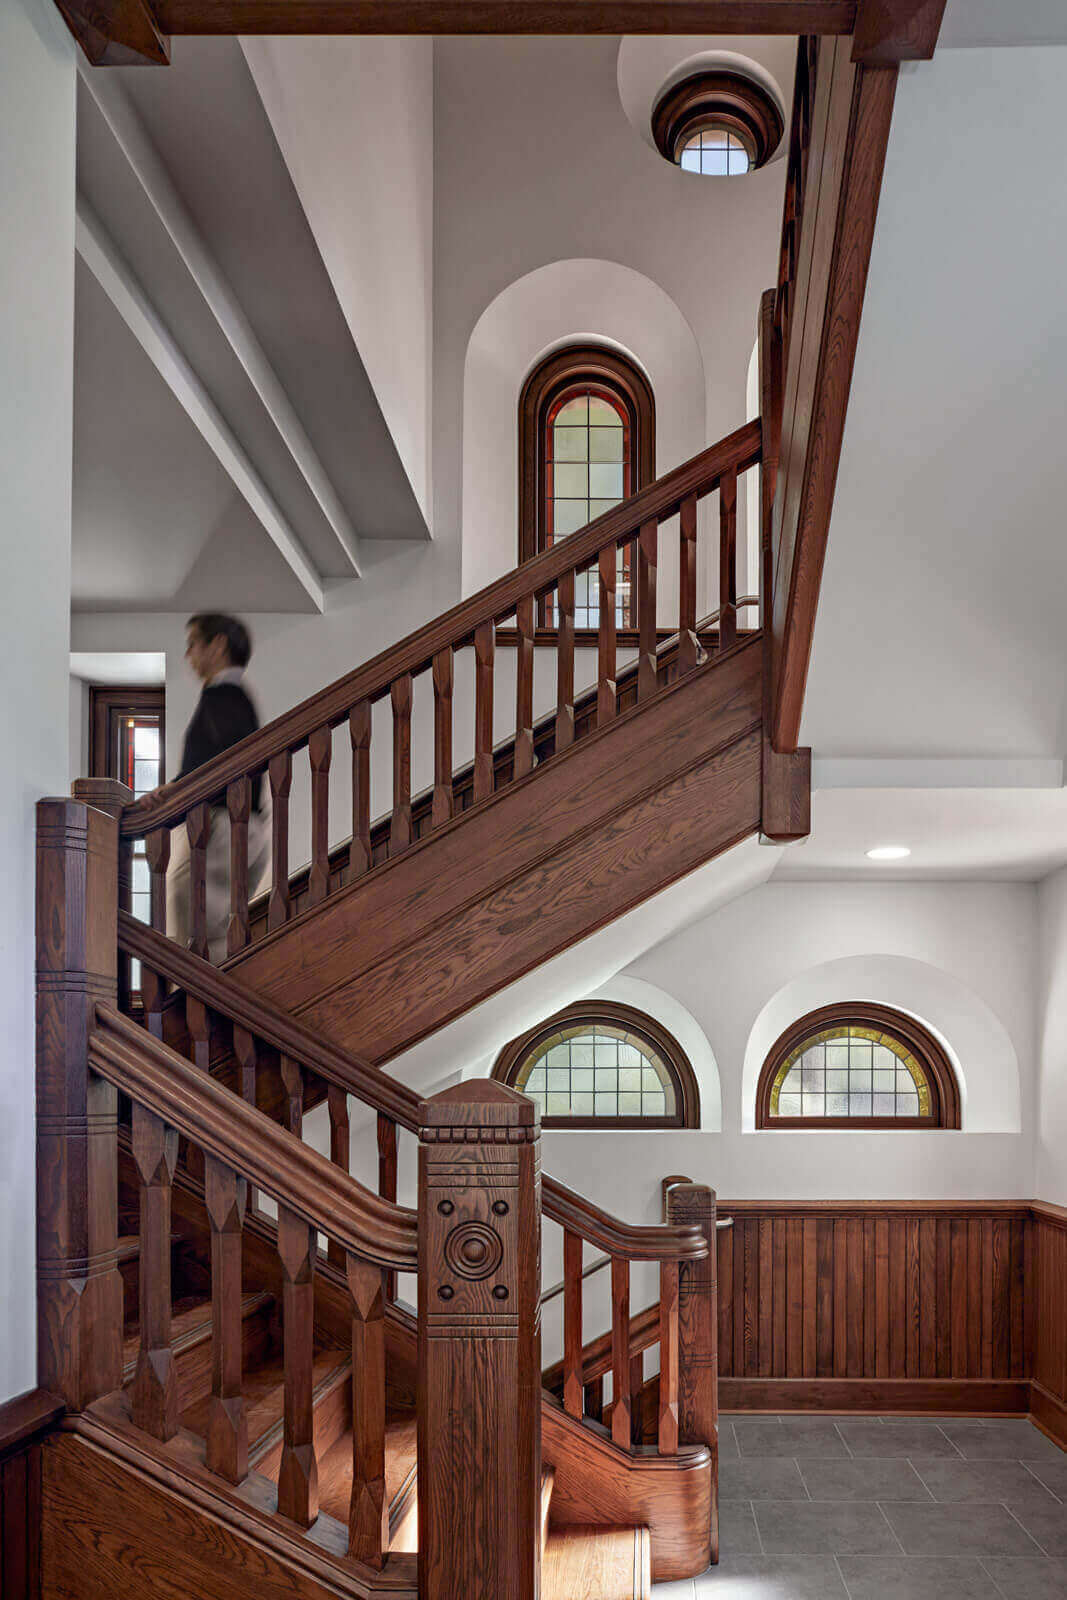 Student descending wooden staircase with multiple arched windows preserved in the background.